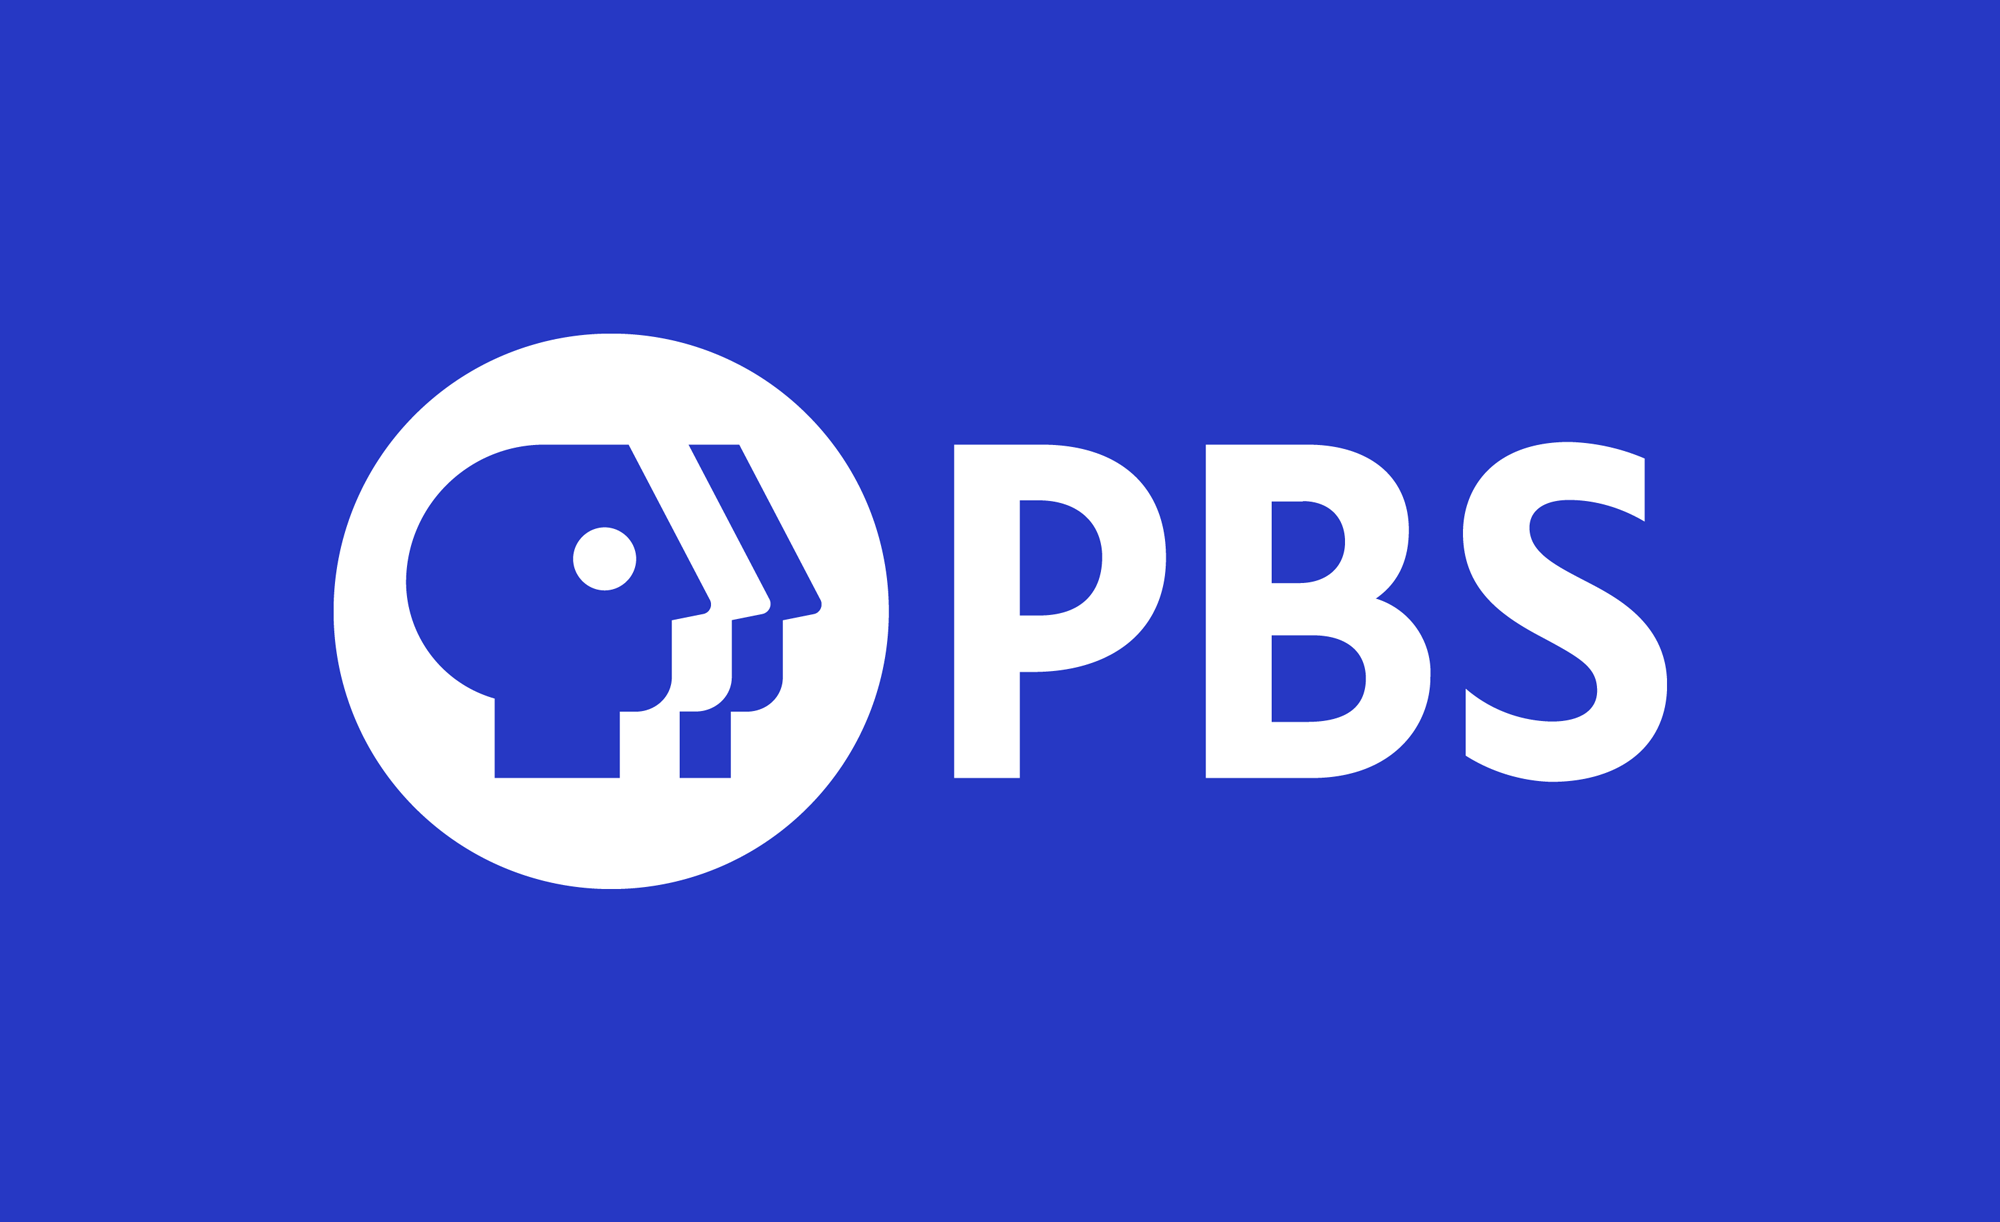 PBS: Public Broadcasting Station Logo